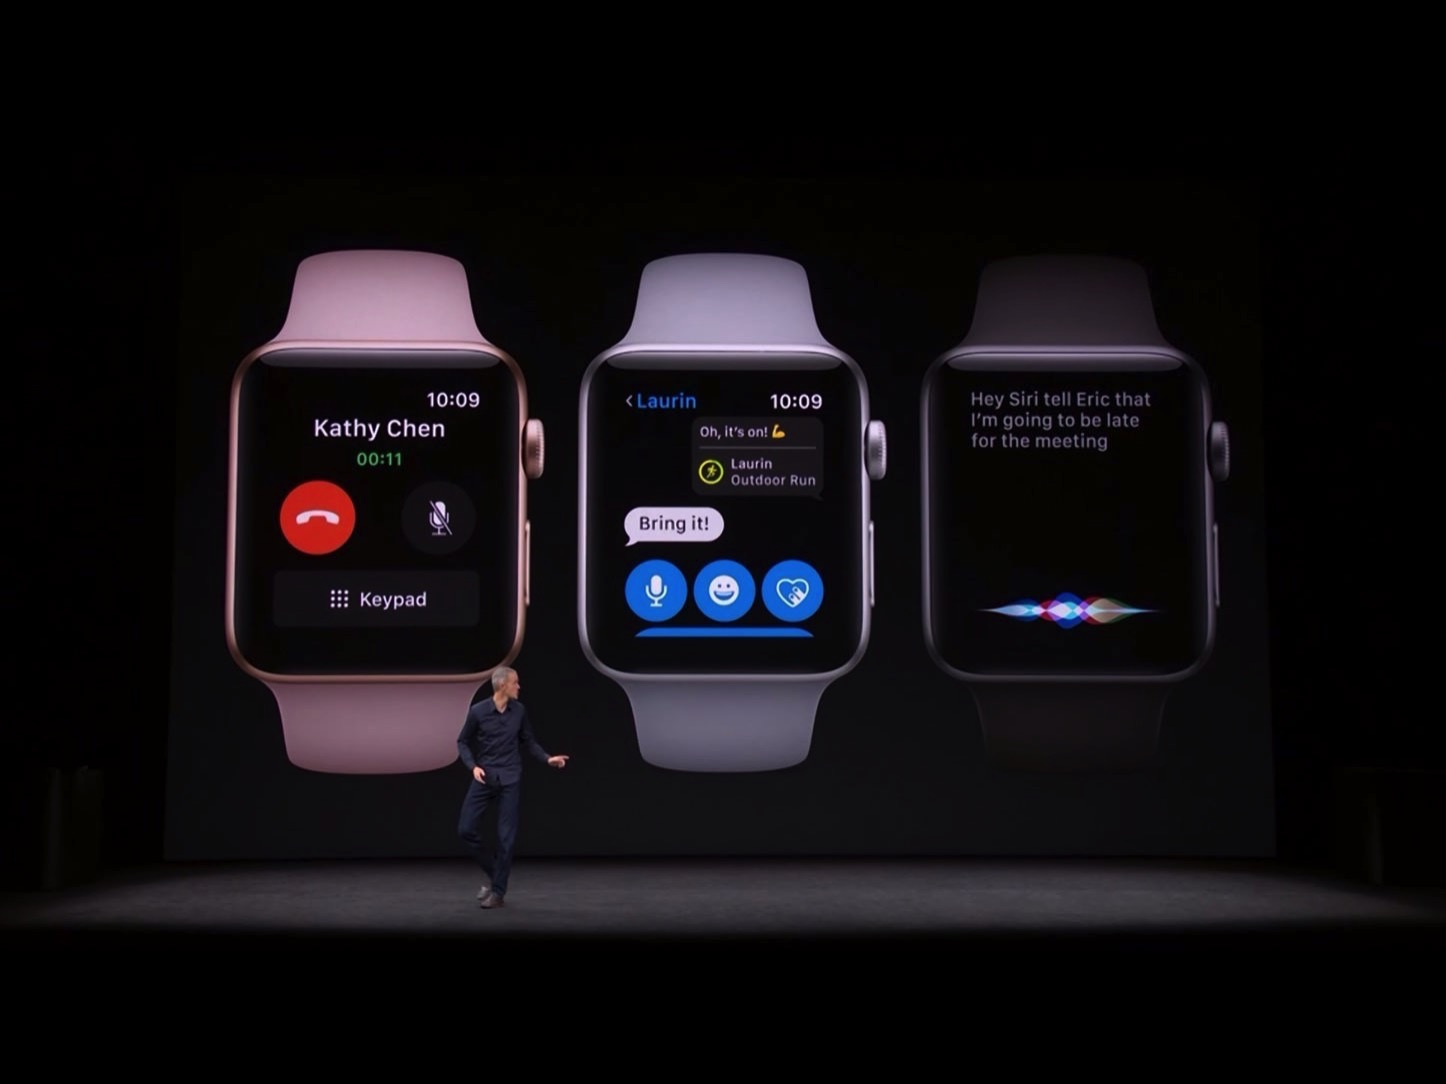 Apple-Watch-Series-3-03.jpg